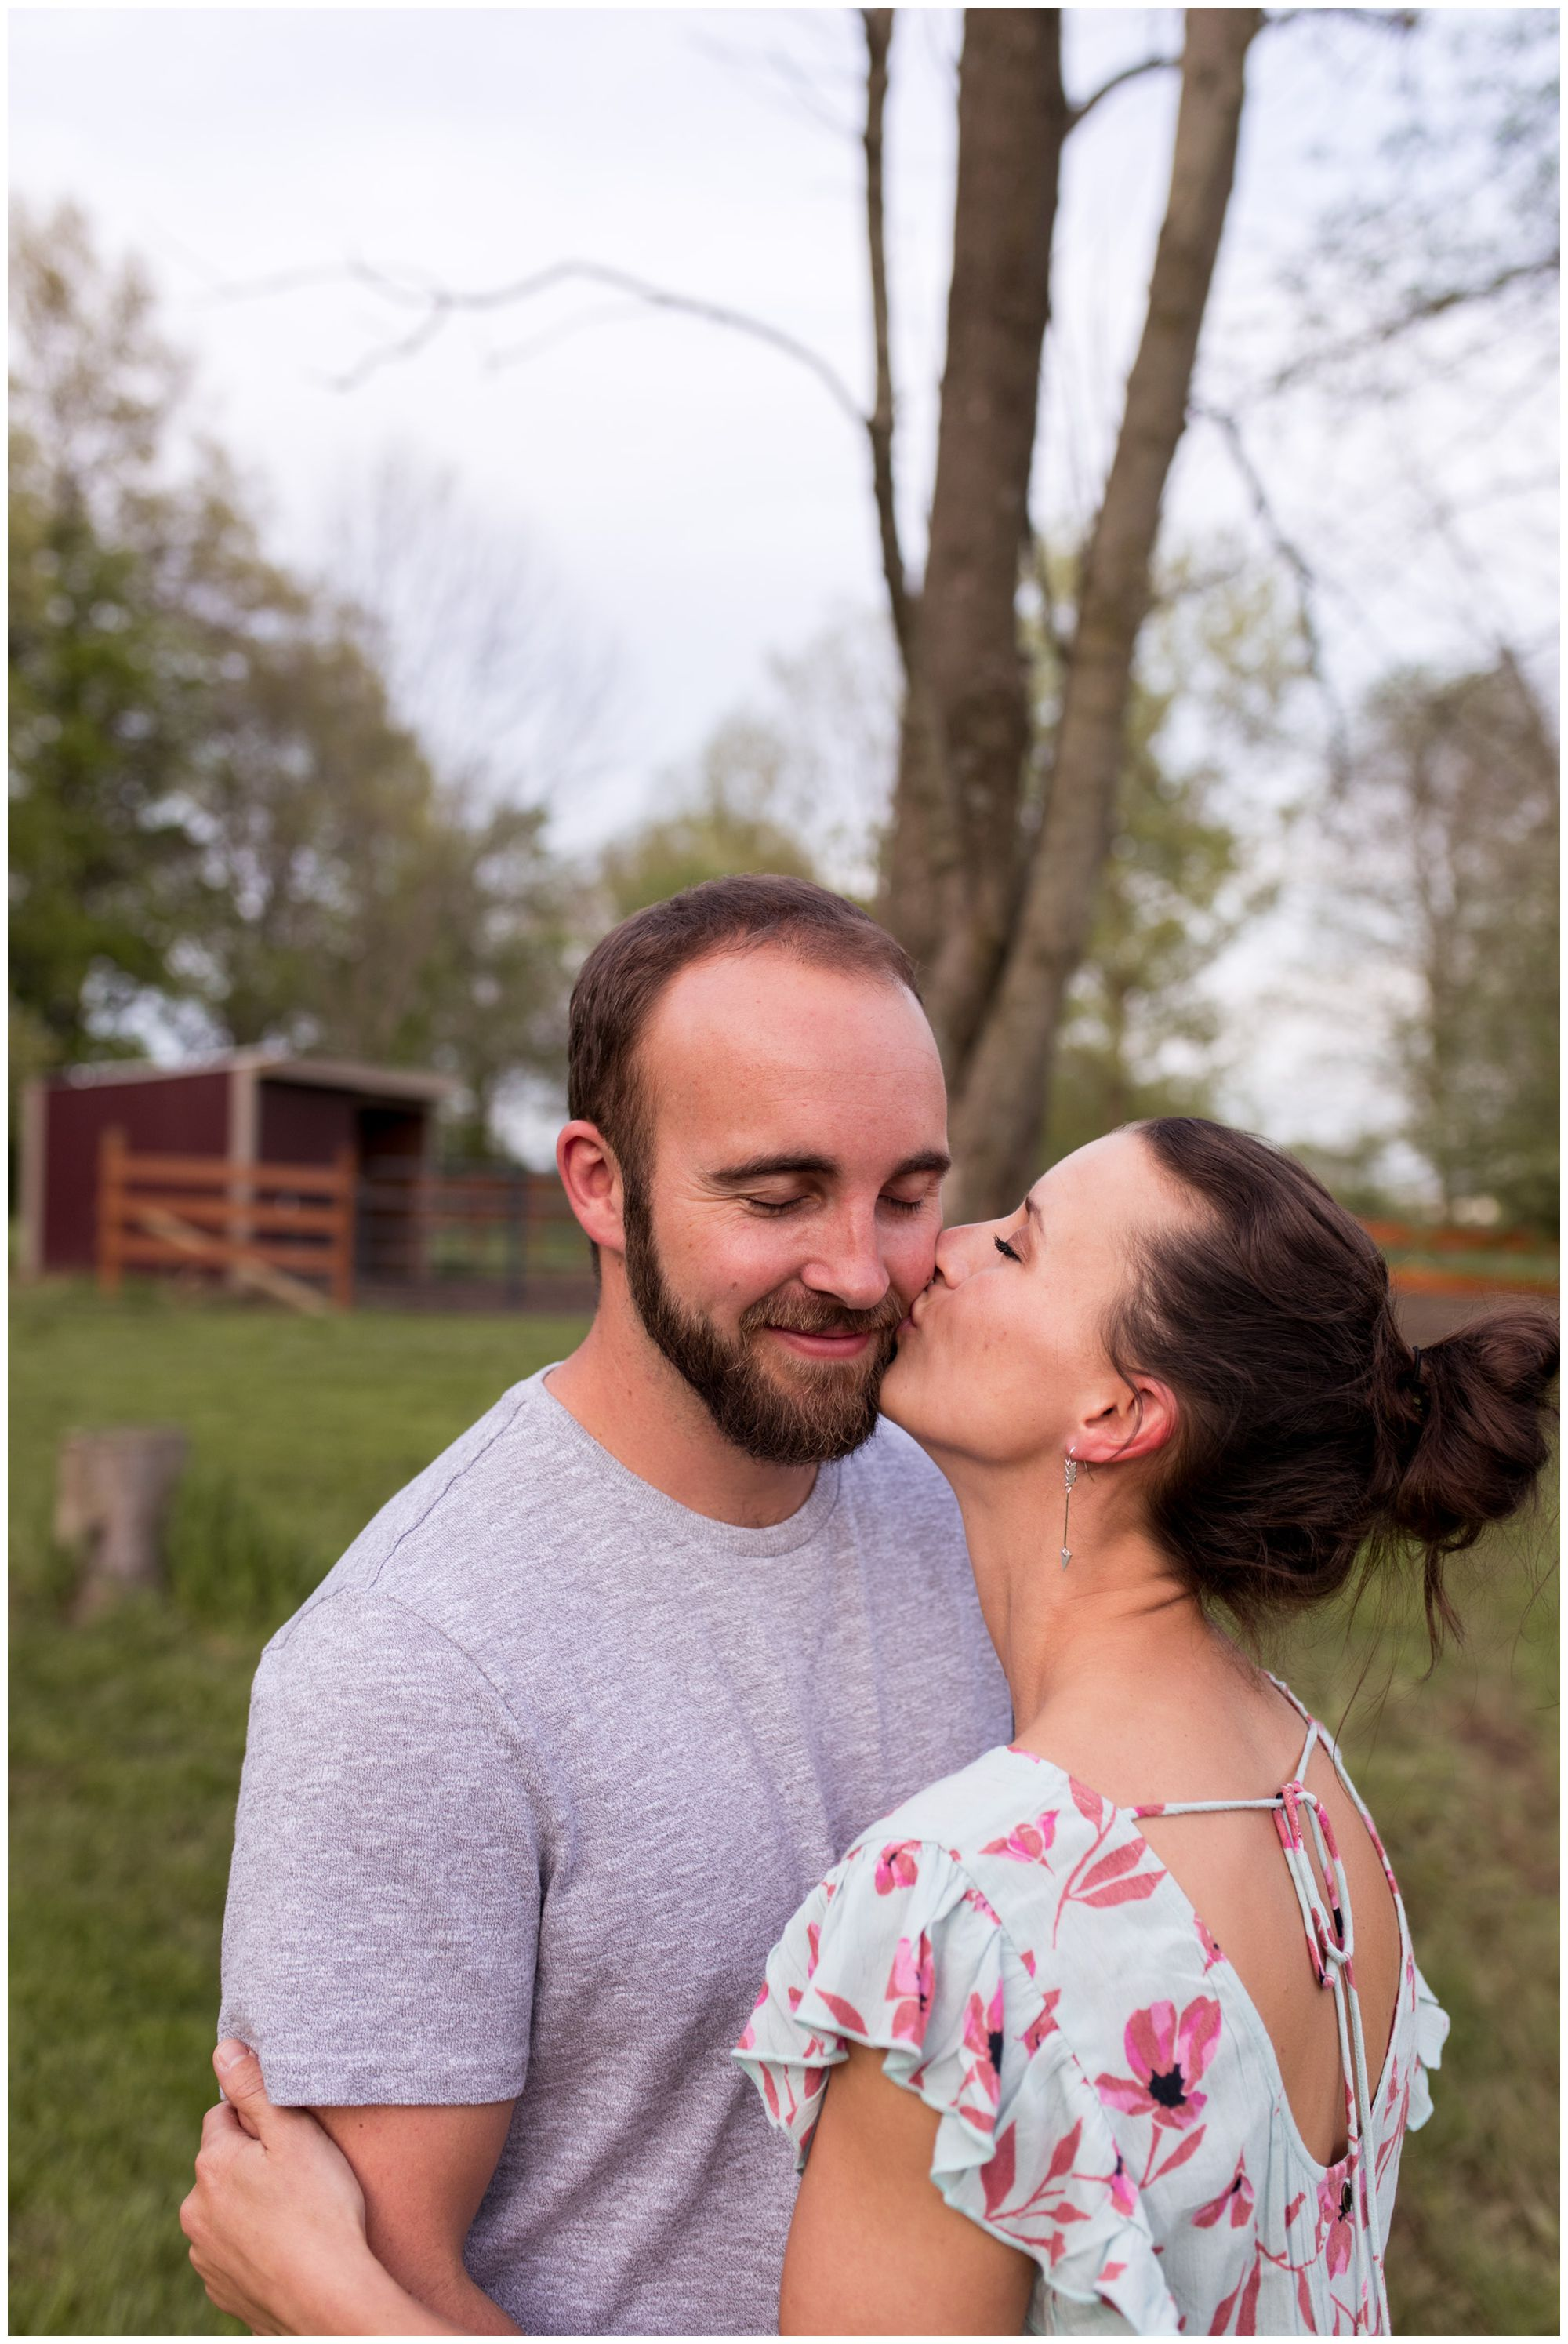 bride kisses groom on cheek during engagement session in Indianapolis